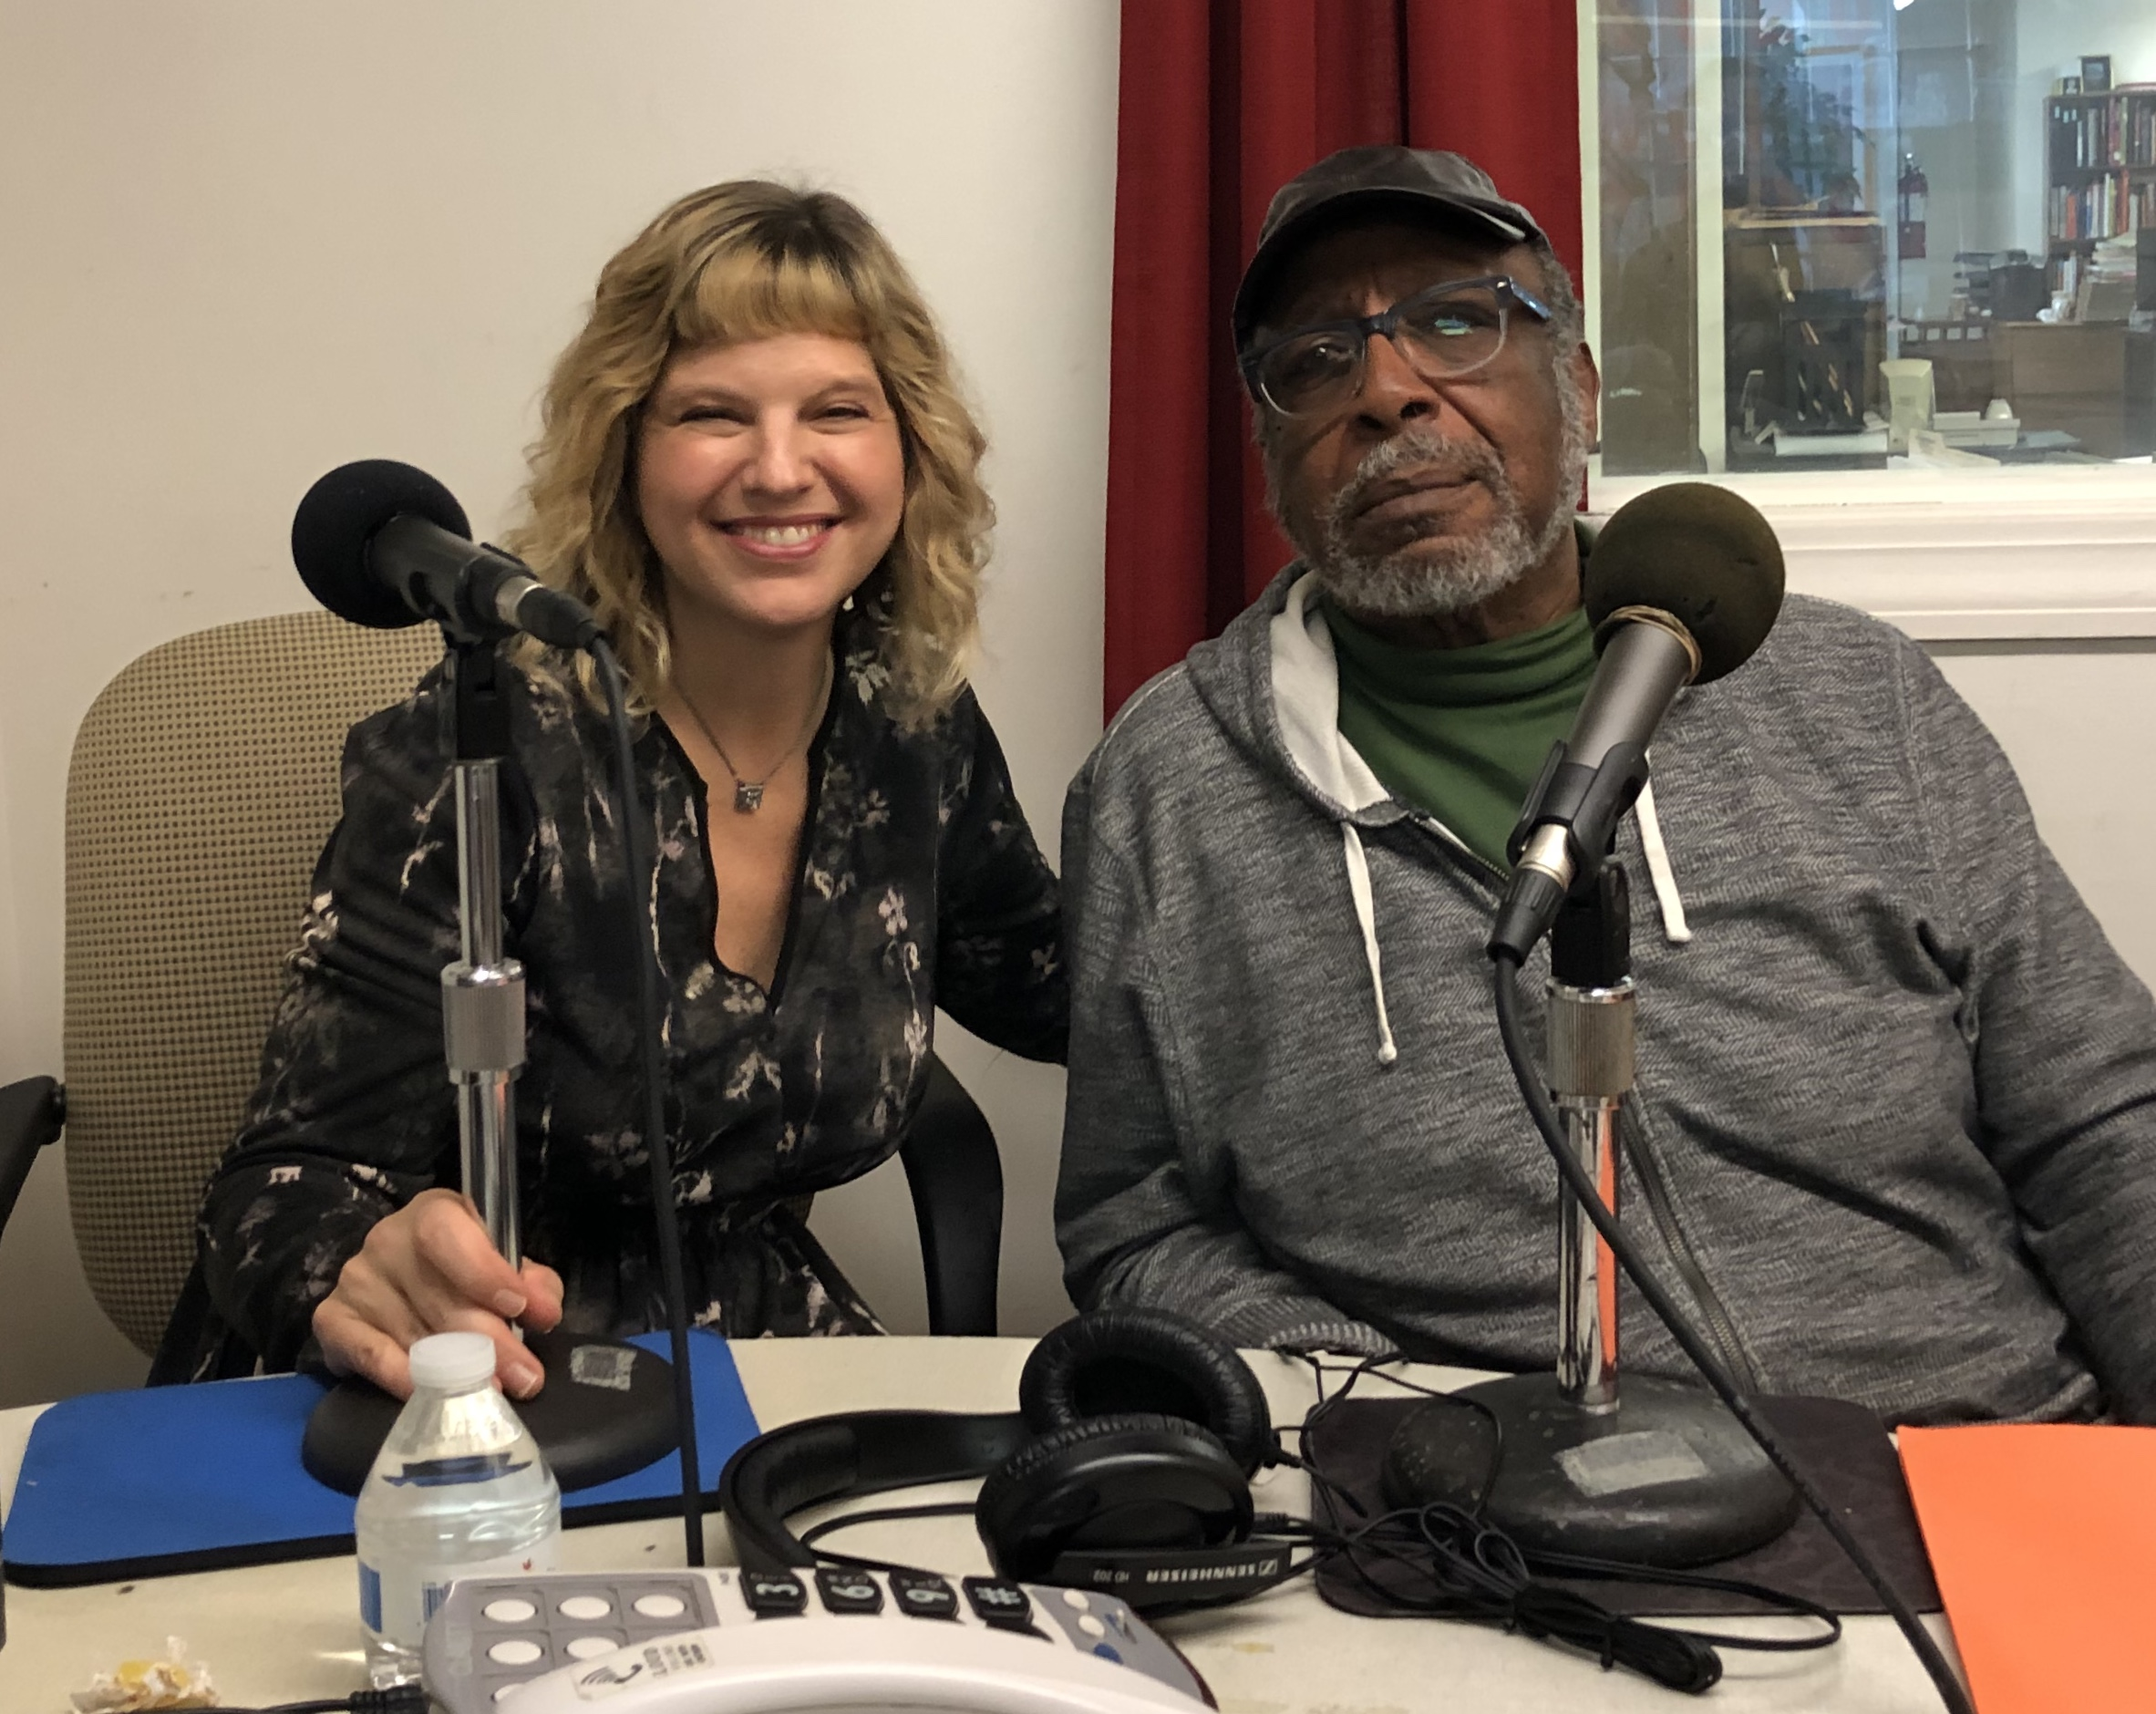 Amie Potsic and Don Camp at WCHE 1520 Radio Studio in West Chester